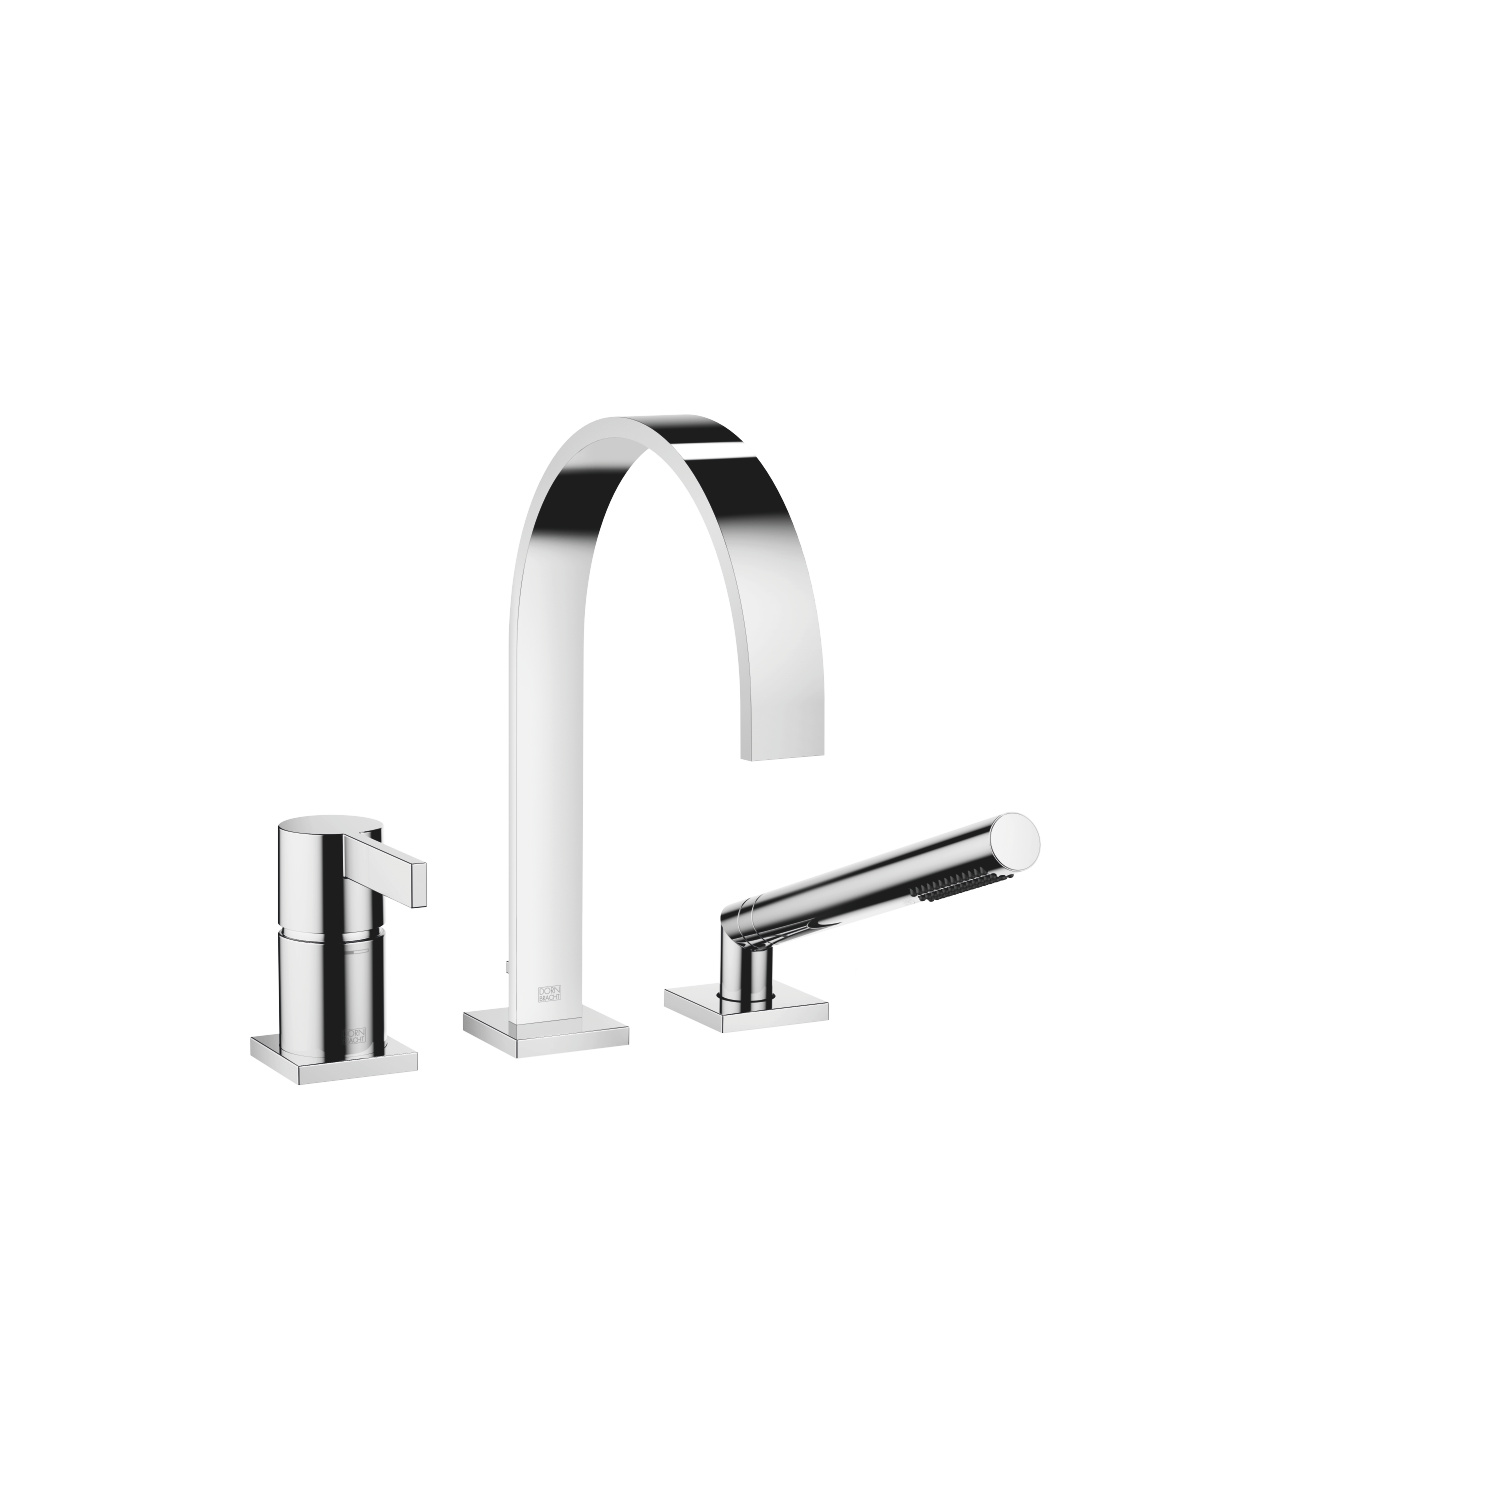 Three-hole single-lever bath mixer for bath rim or tile edge installation - polished chrome